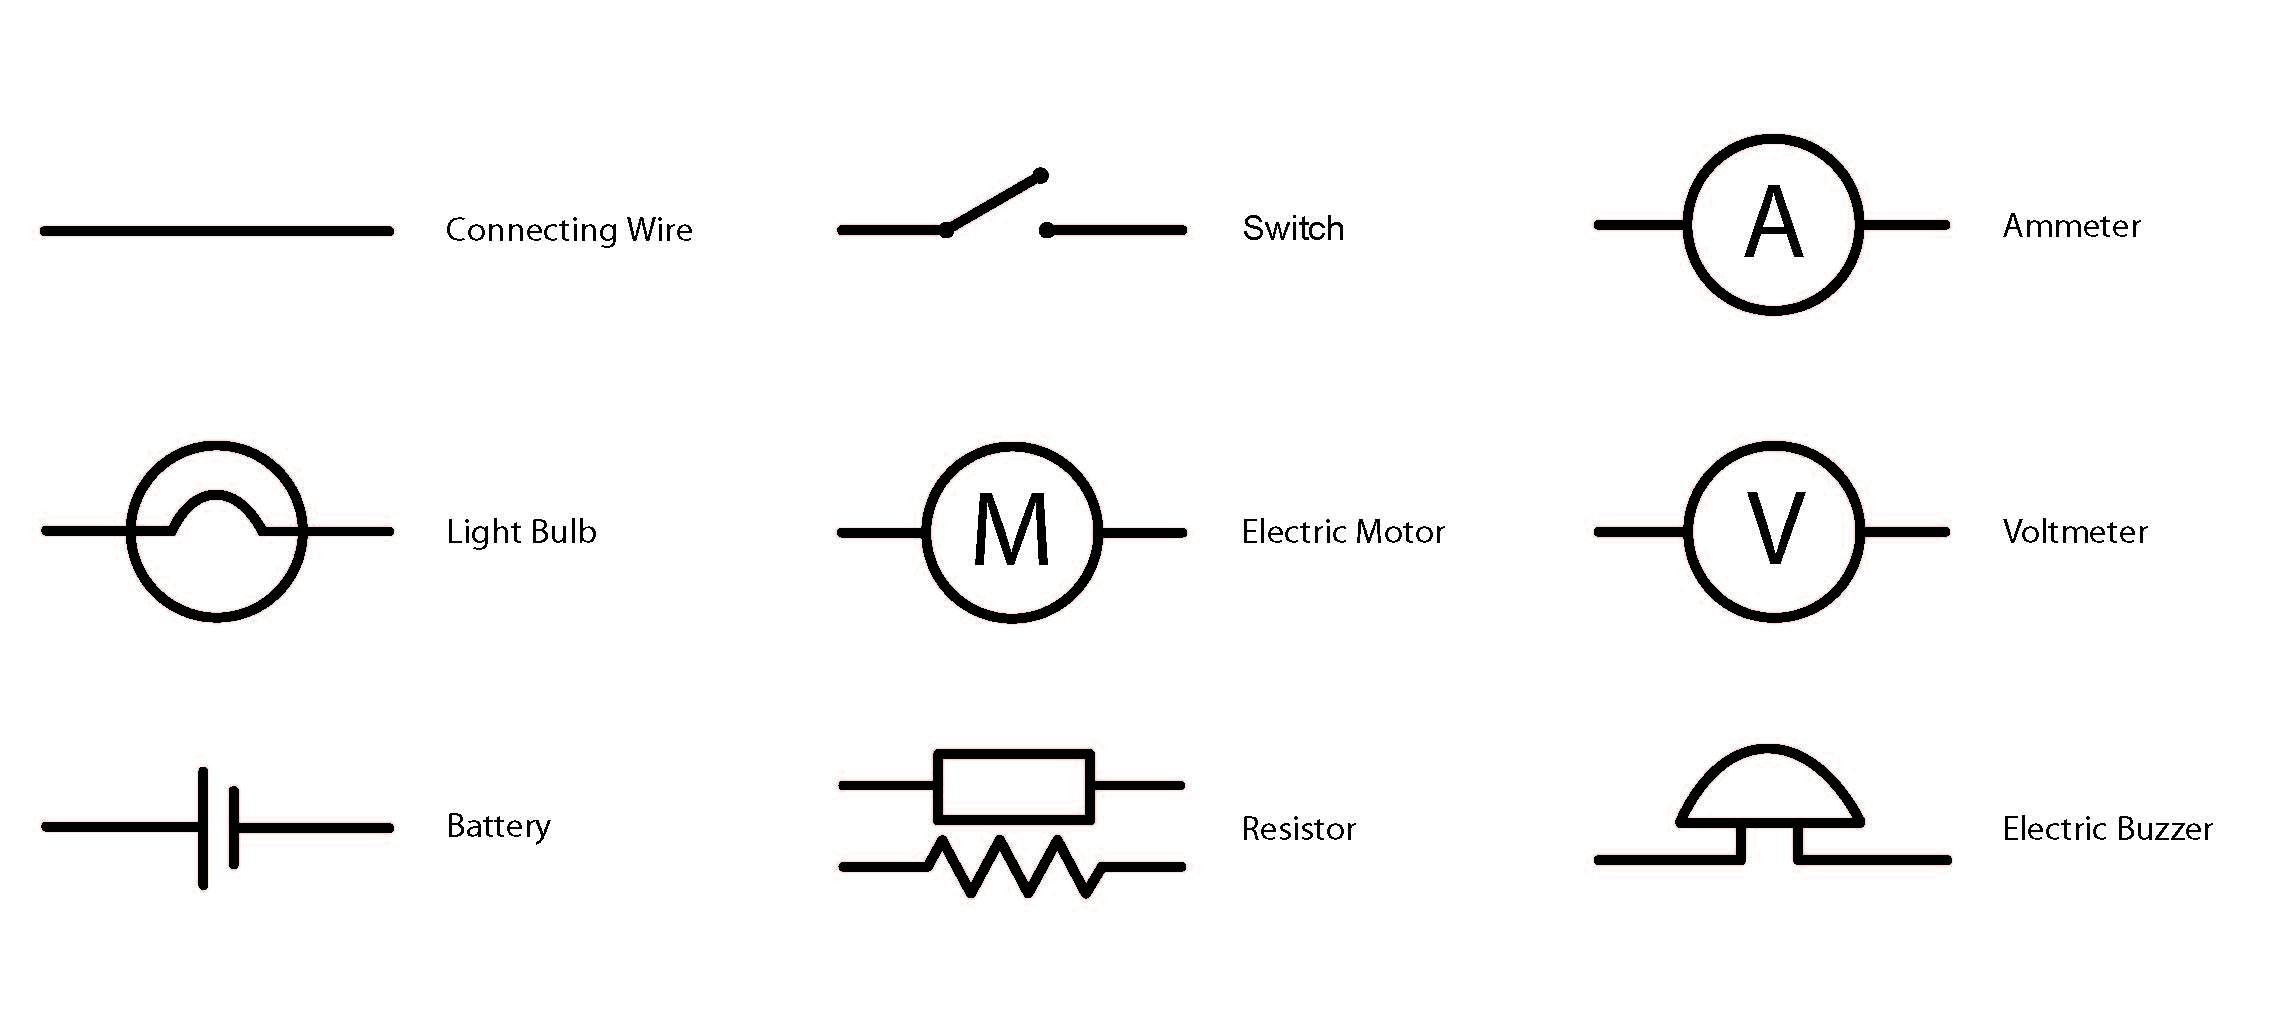 Power Meter Schematic Symbol